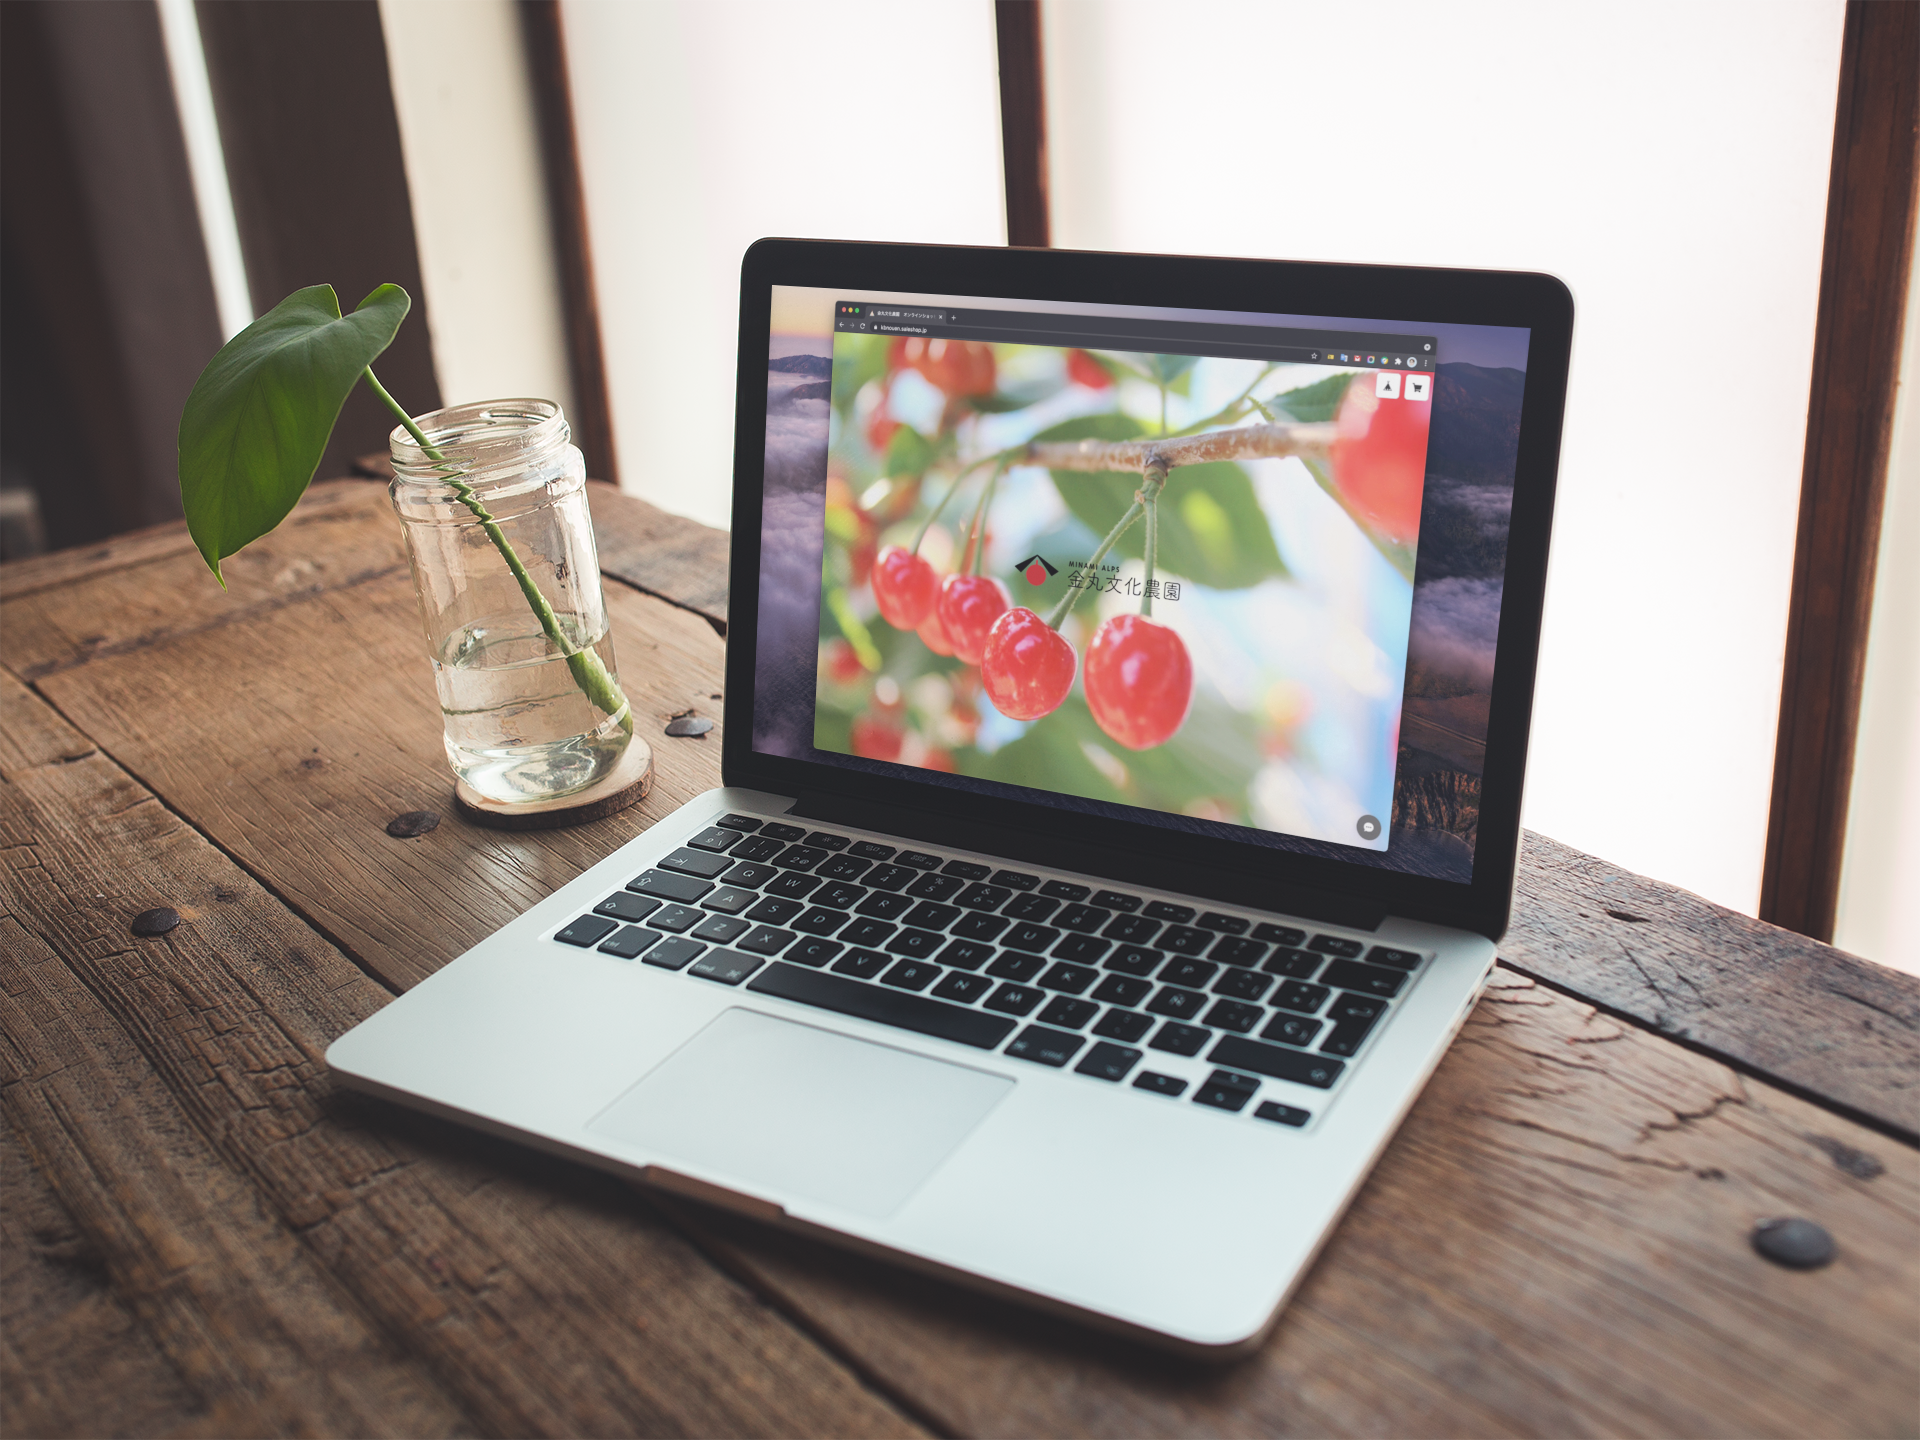 macbook-mockup-template-on-a-wooden-table-a19495